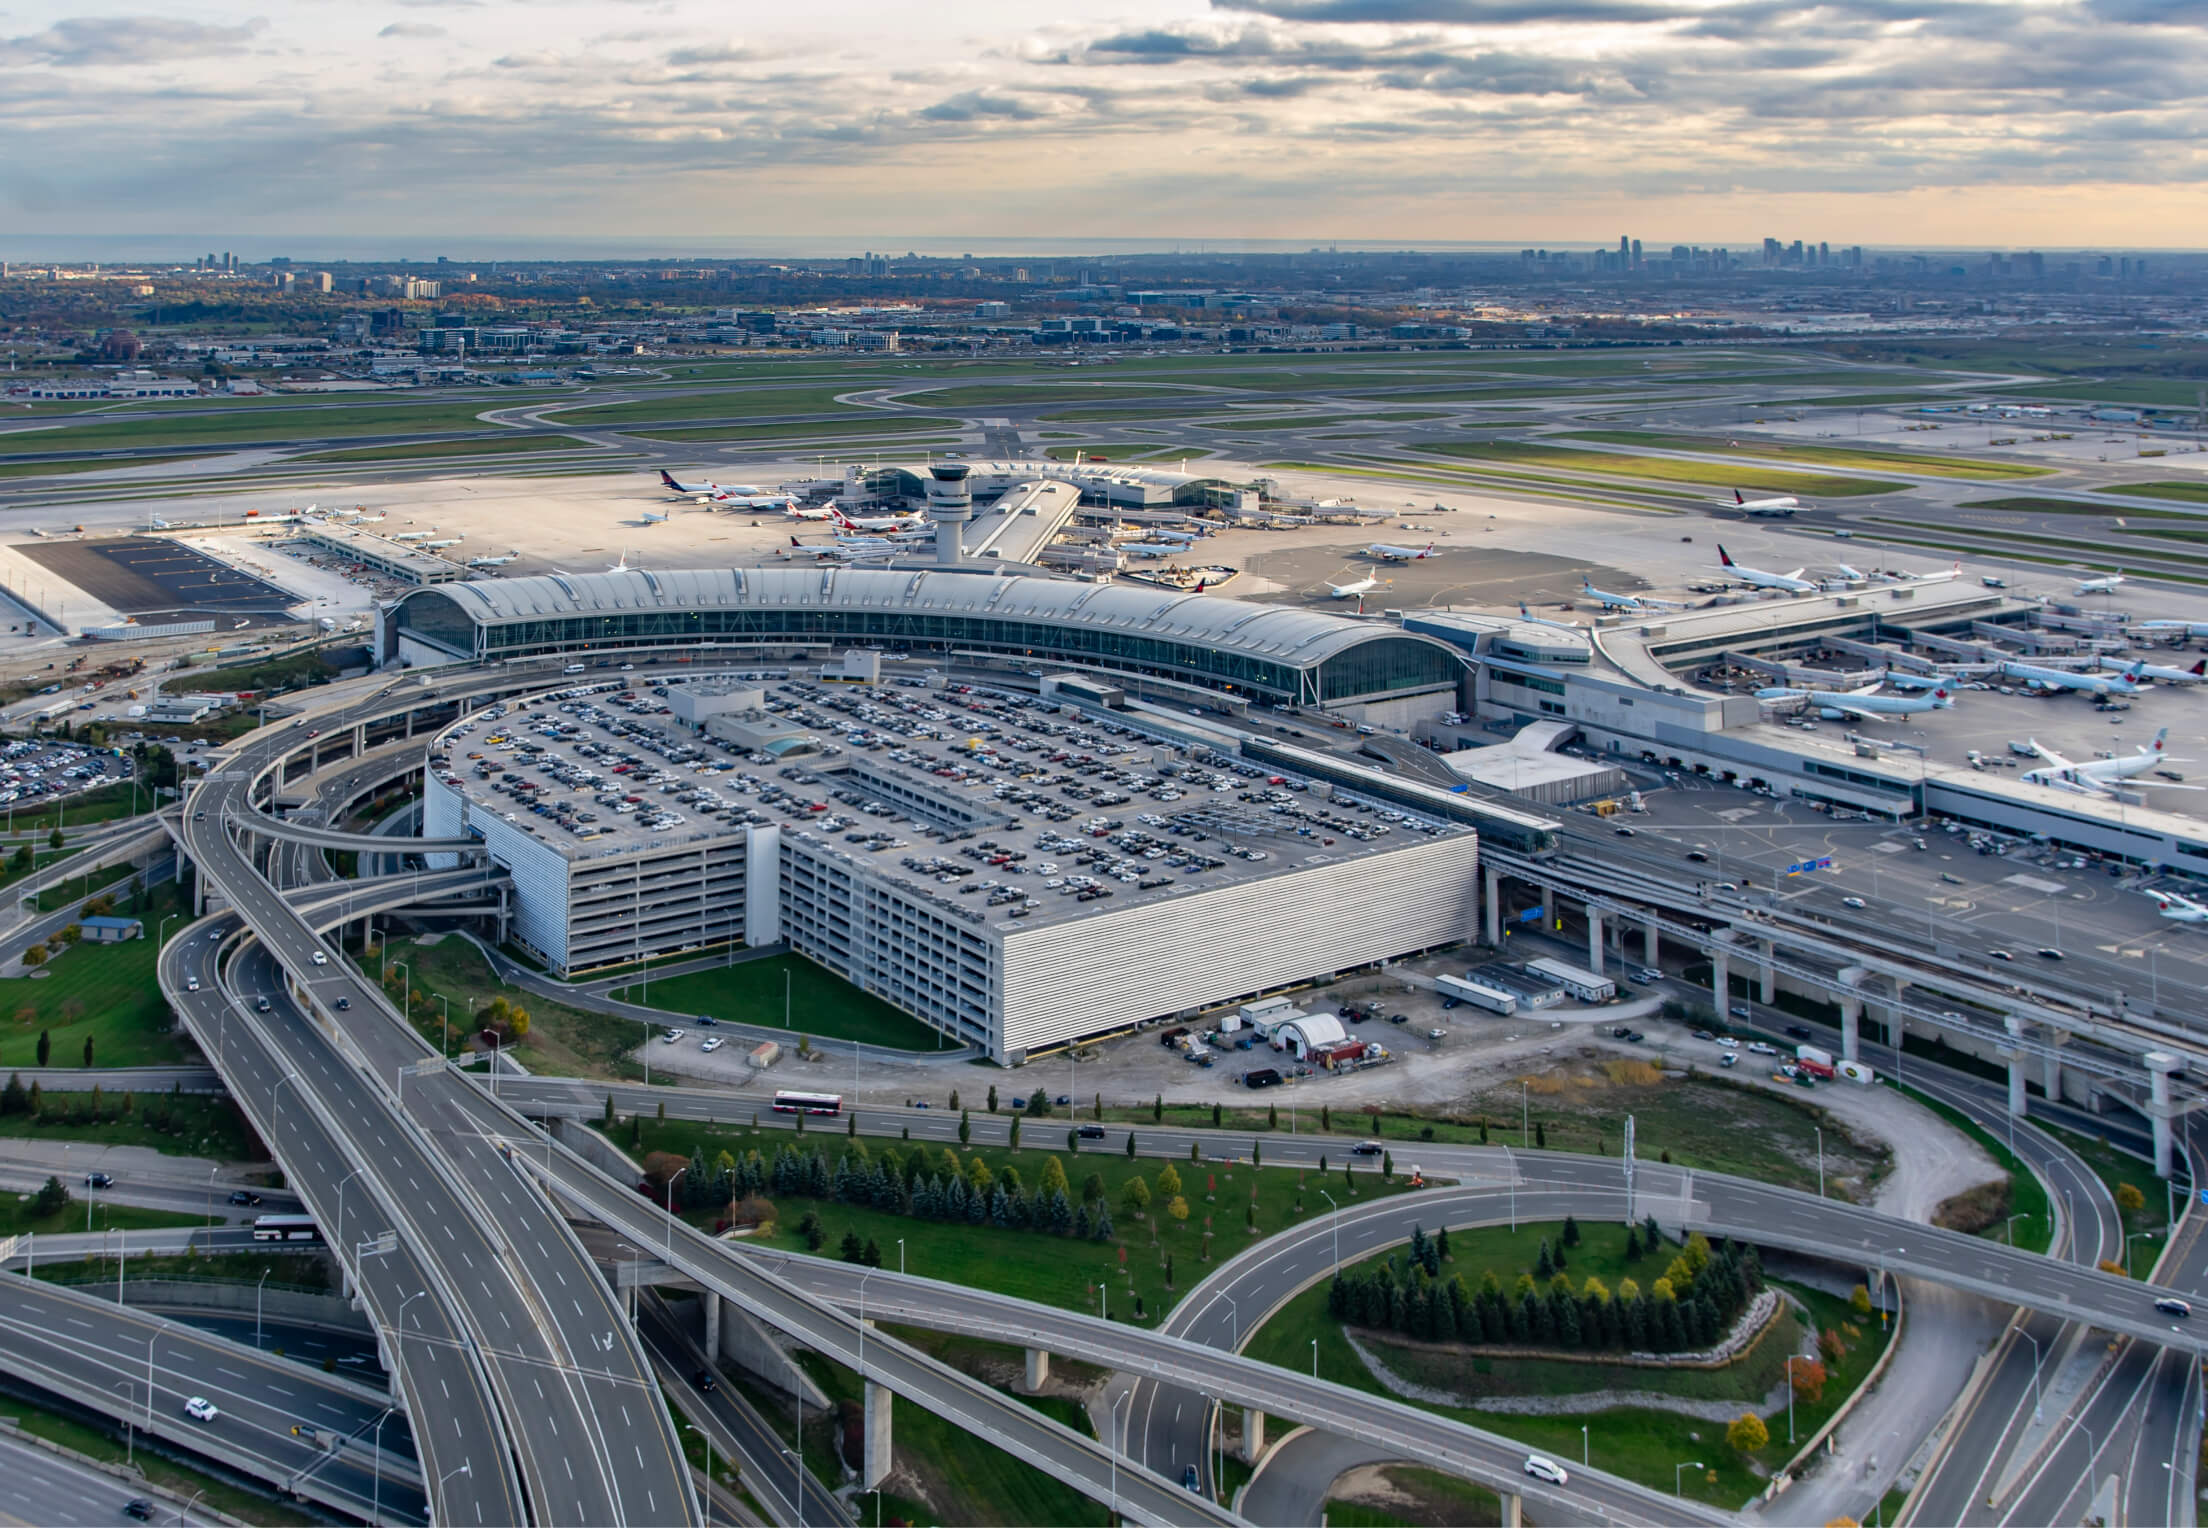 An aerial view of the entire Toronto Pearson Airport